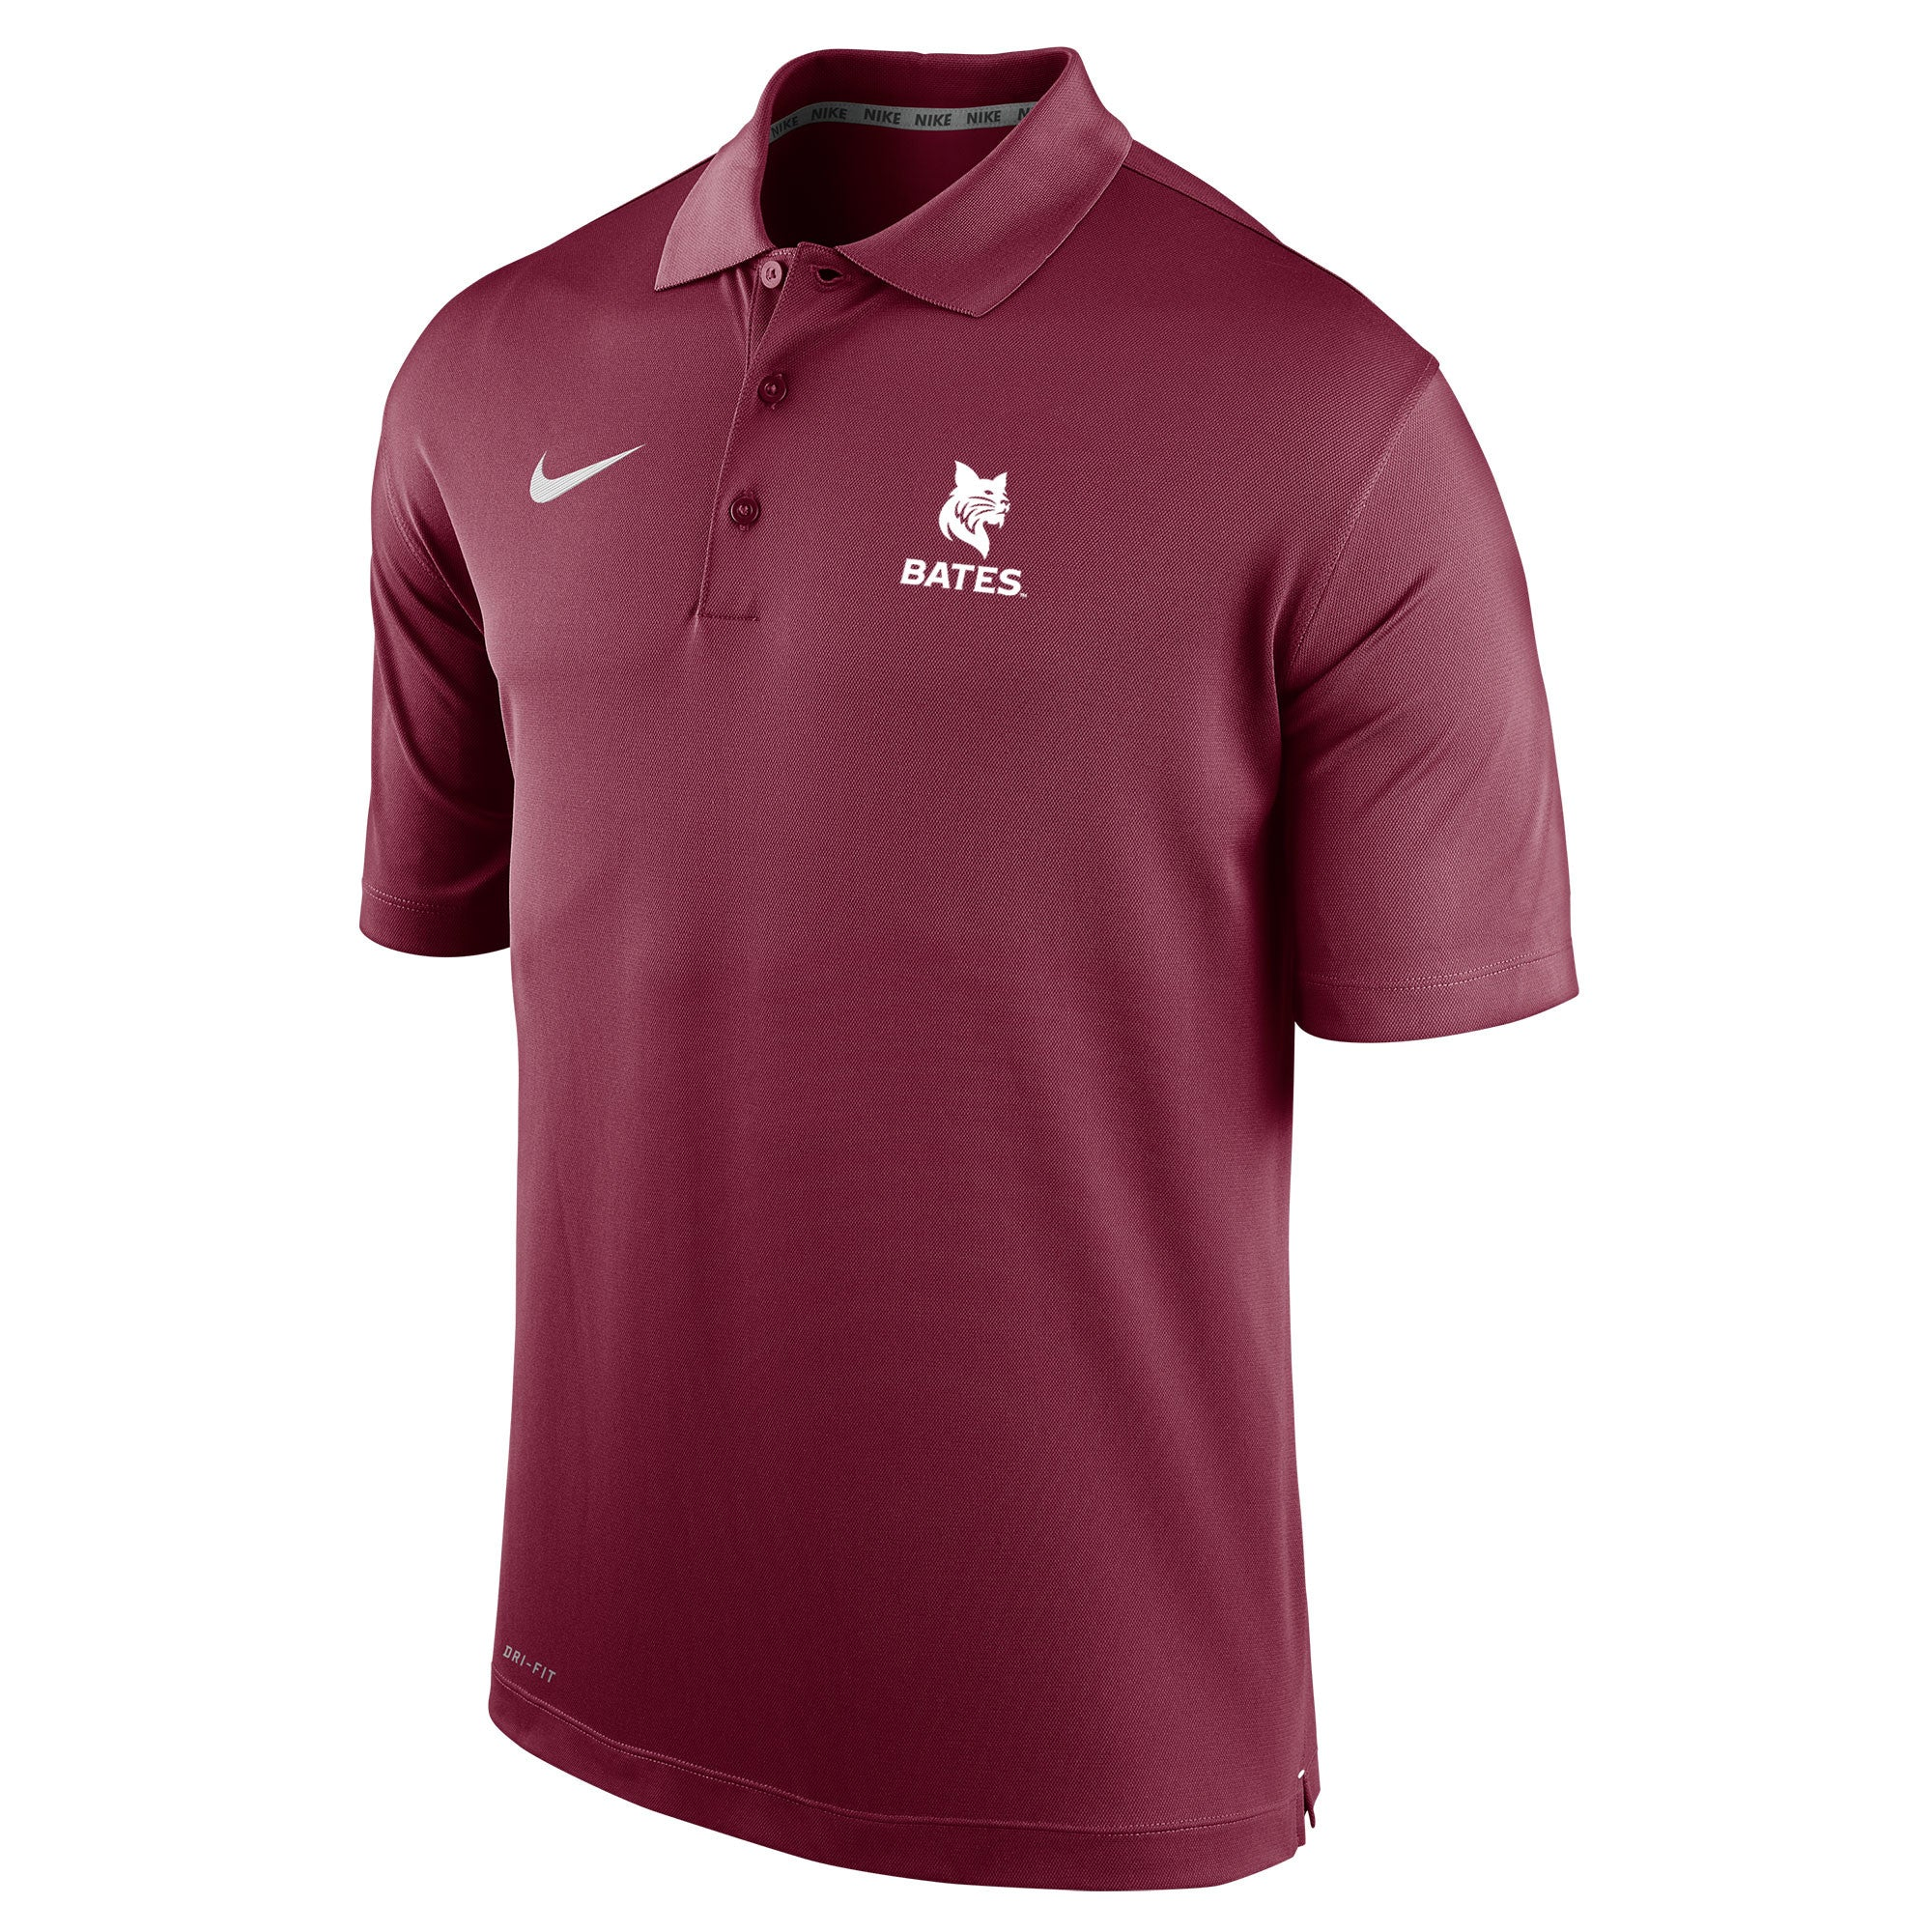 men 39 s nike performance polo shirt with embroidery bates college store. Black Bedroom Furniture Sets. Home Design Ideas